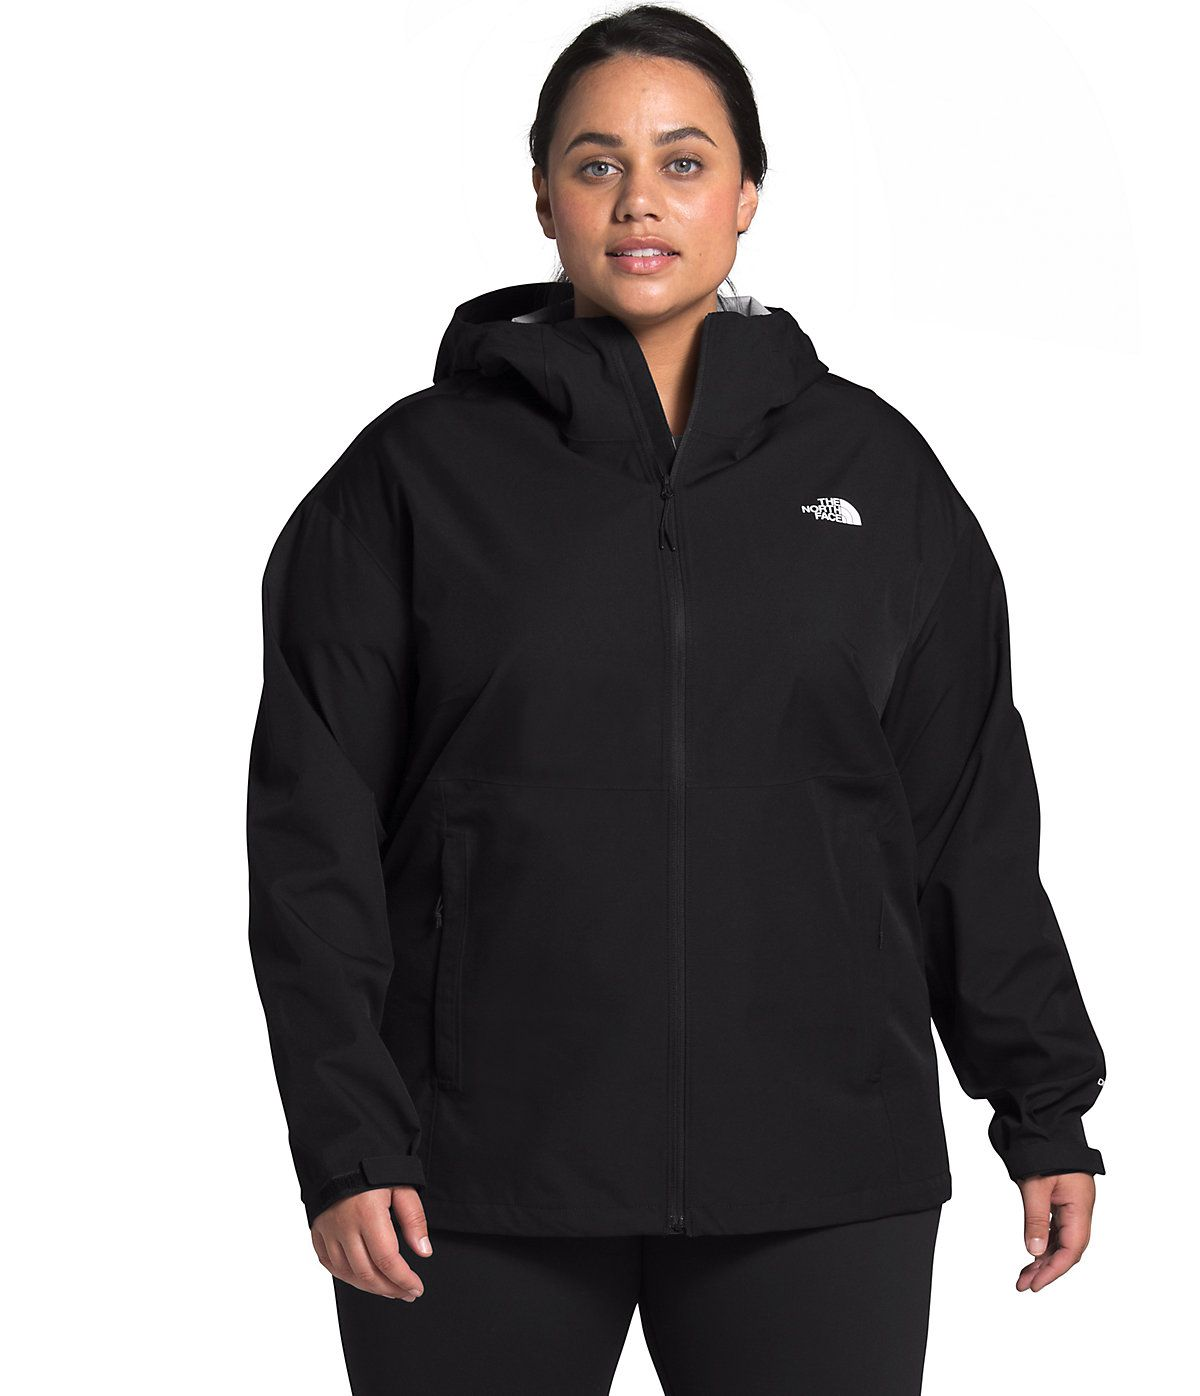 Women S Plus Allproof Stretch Jacket The North Face North Face Women The North Face Jackets [ 1396 x 1200 Pixel ]